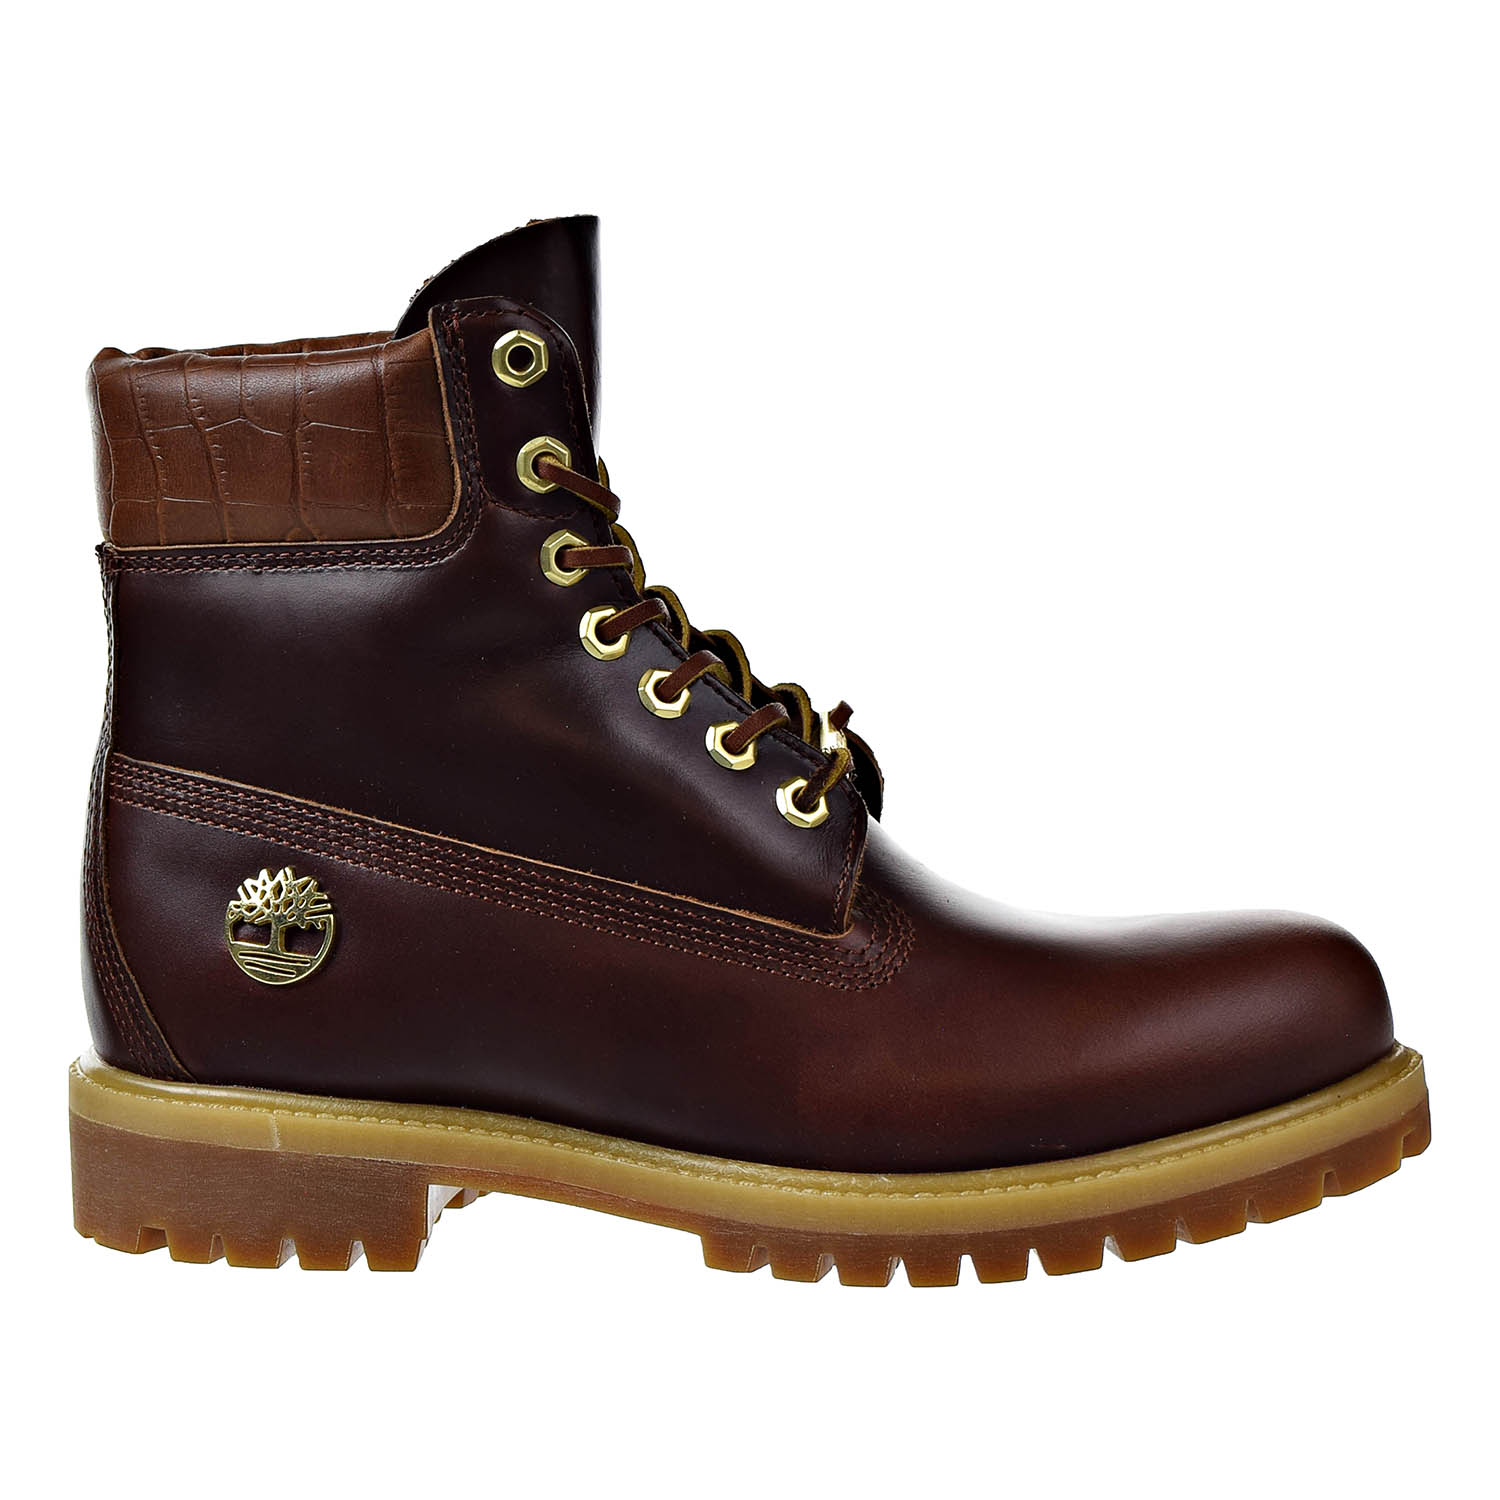 Timberland 6 Inch Premium Men's Boots Medium Brown tb0a1p9p by Timberland